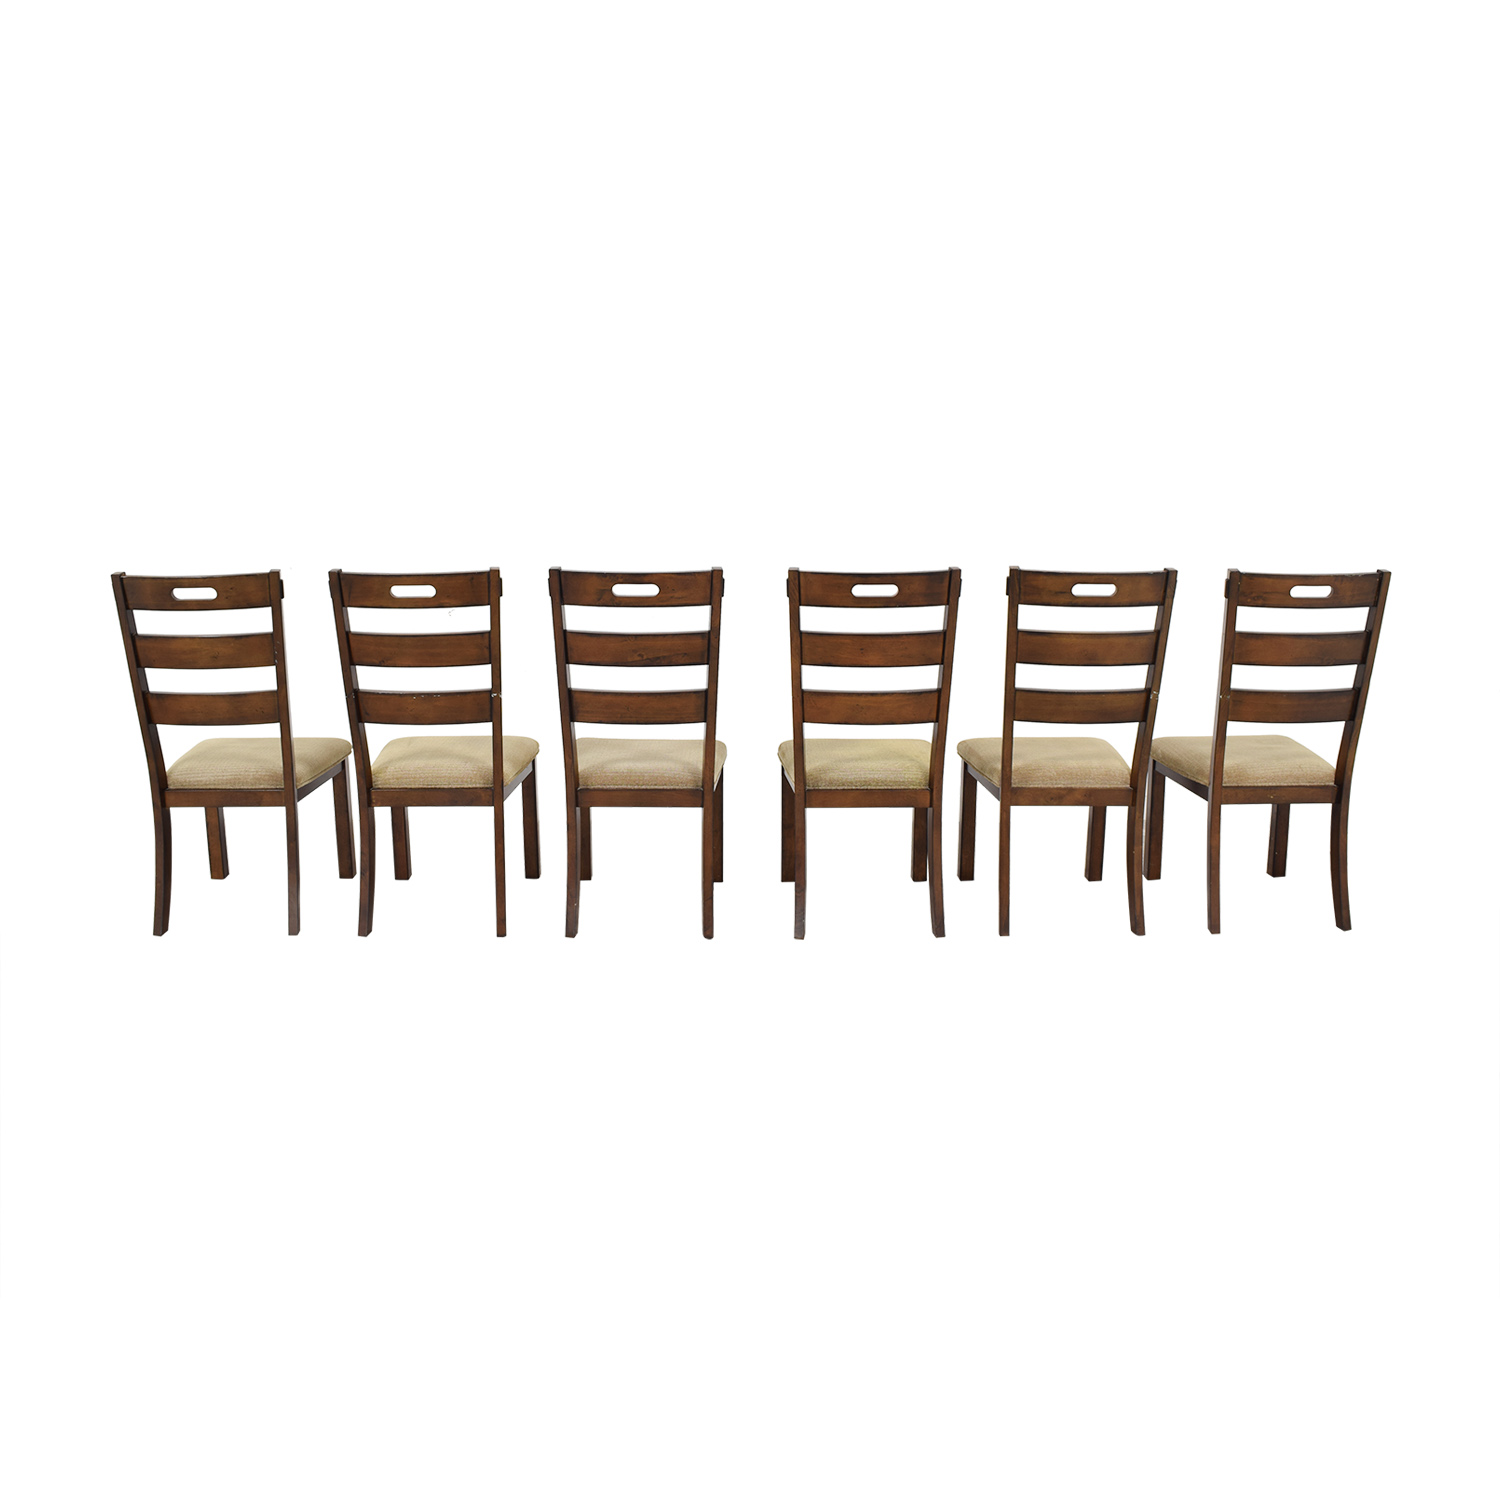 buy Wayfair Wayfair Ladder Back Upholstered Dining Chairs online